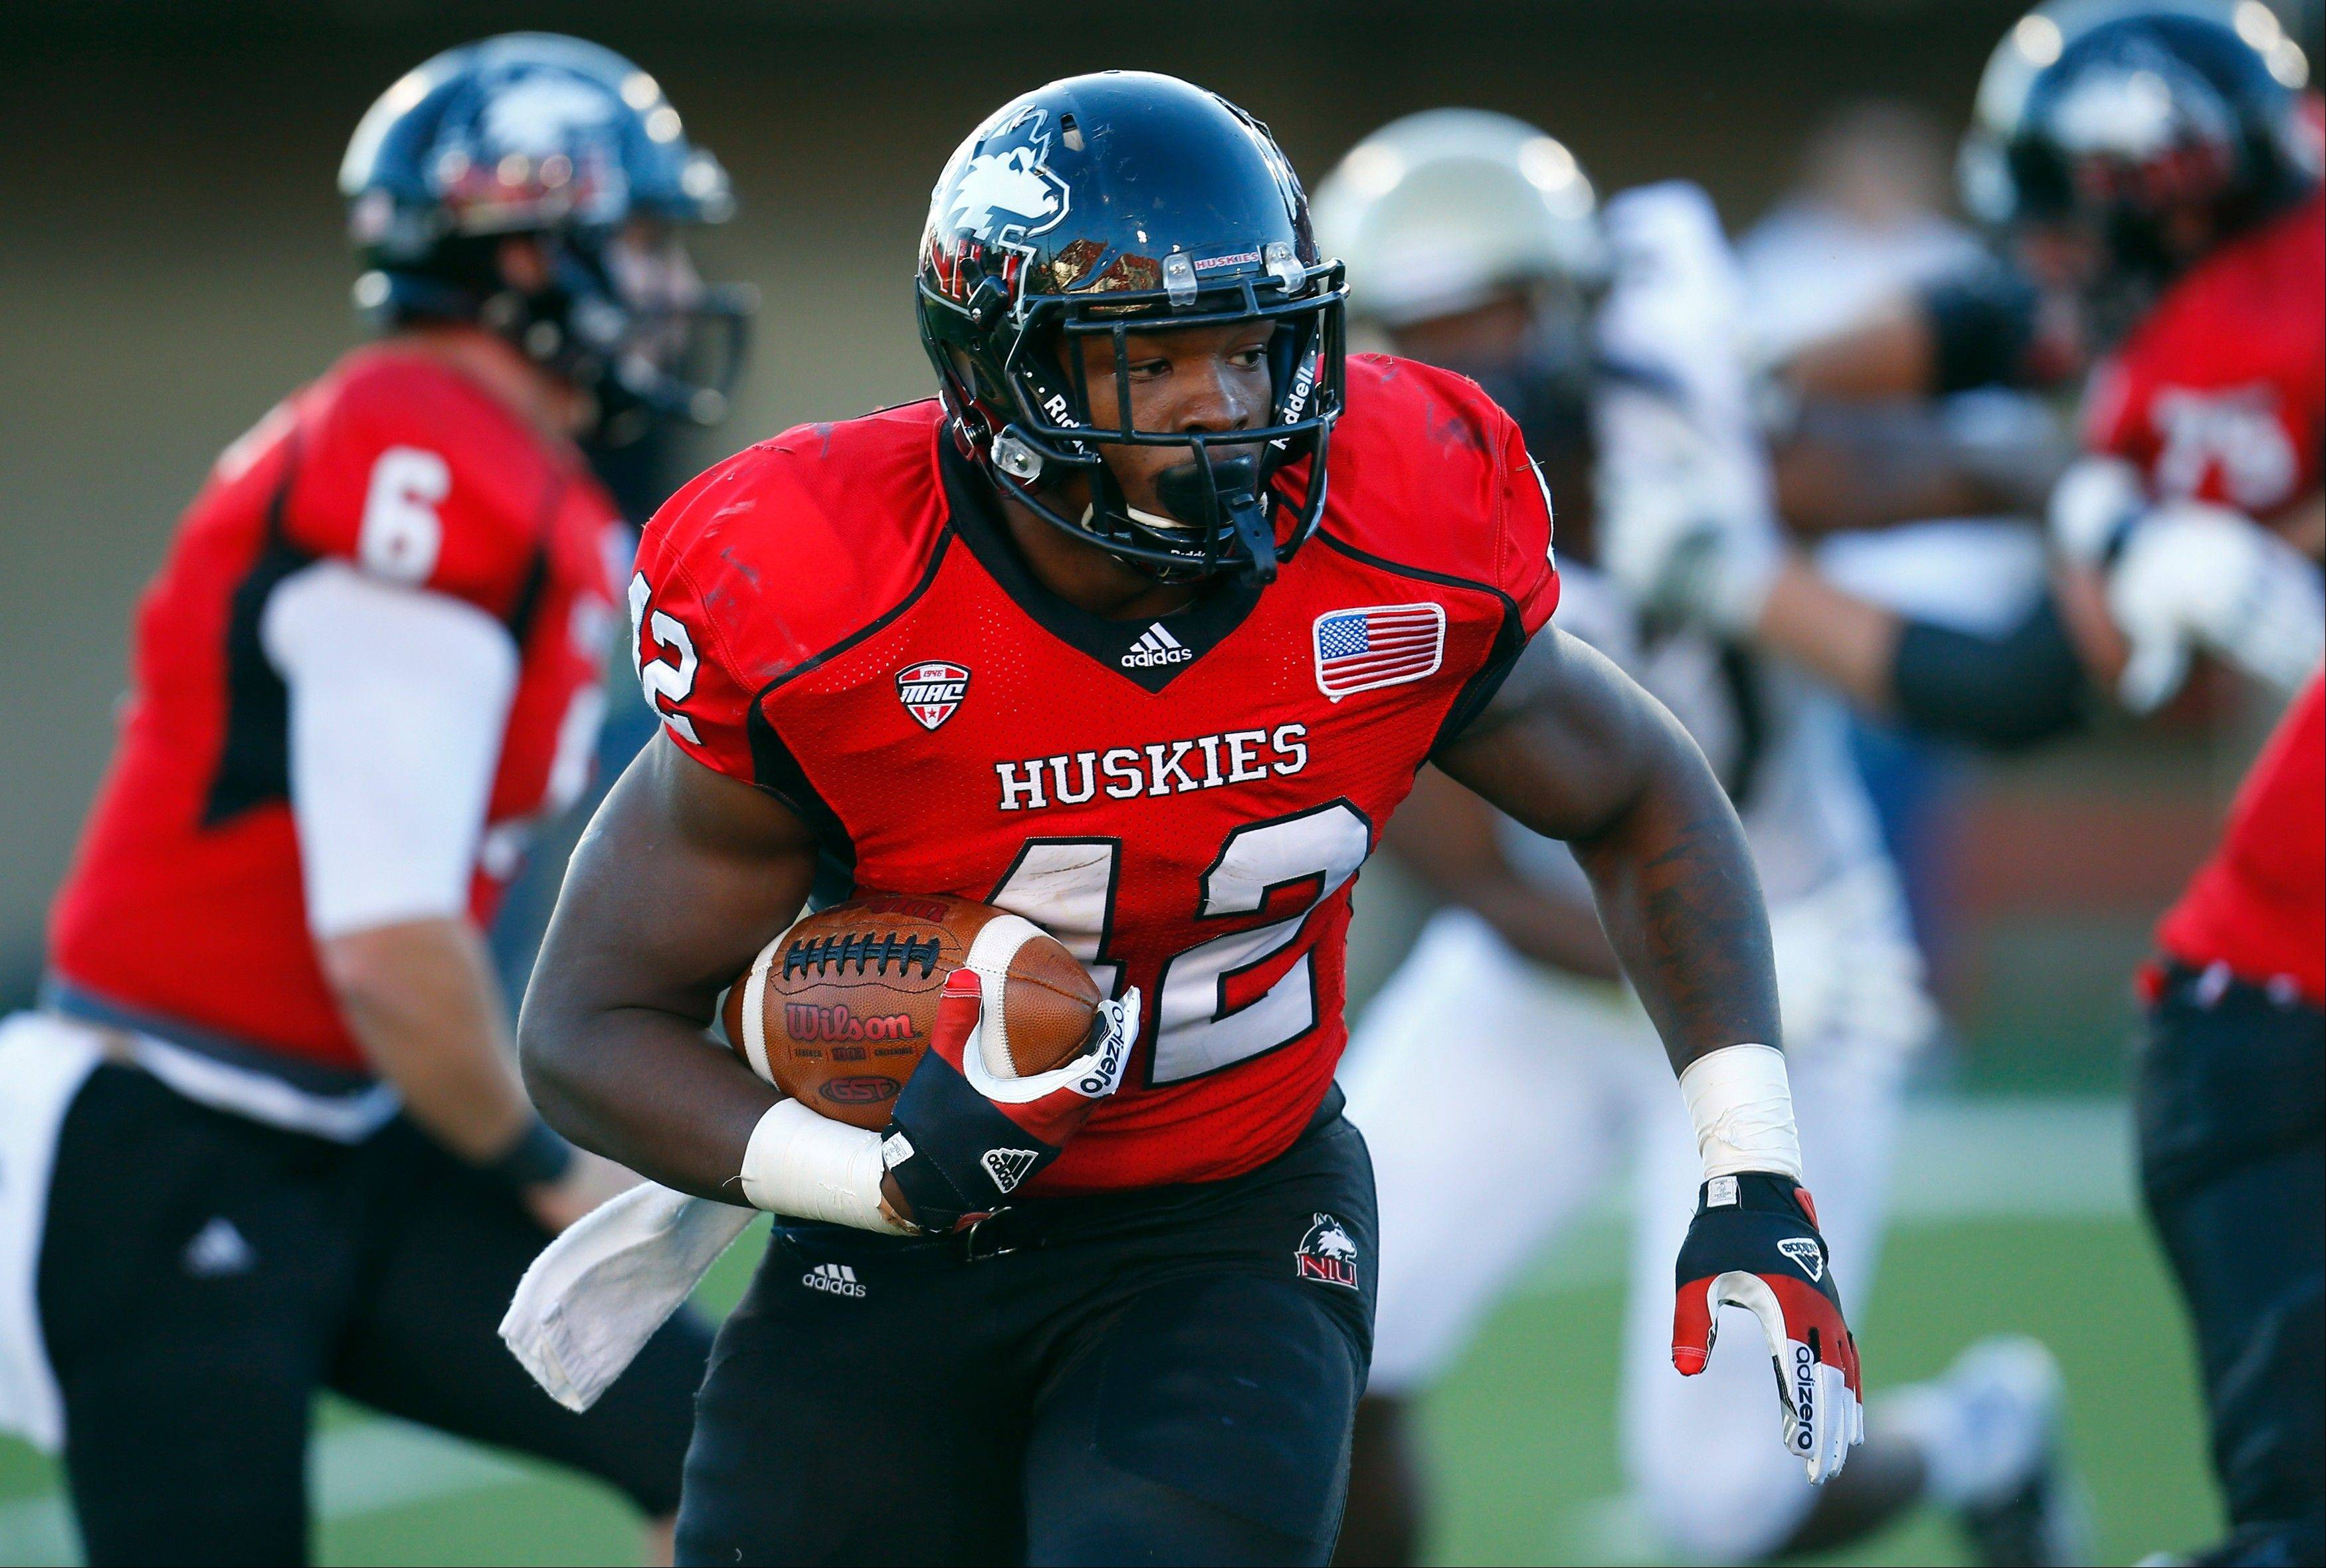 Northern Illinois running back Cameron Stingily runs the ball against Akron during Saturday's first half in DeKalb.